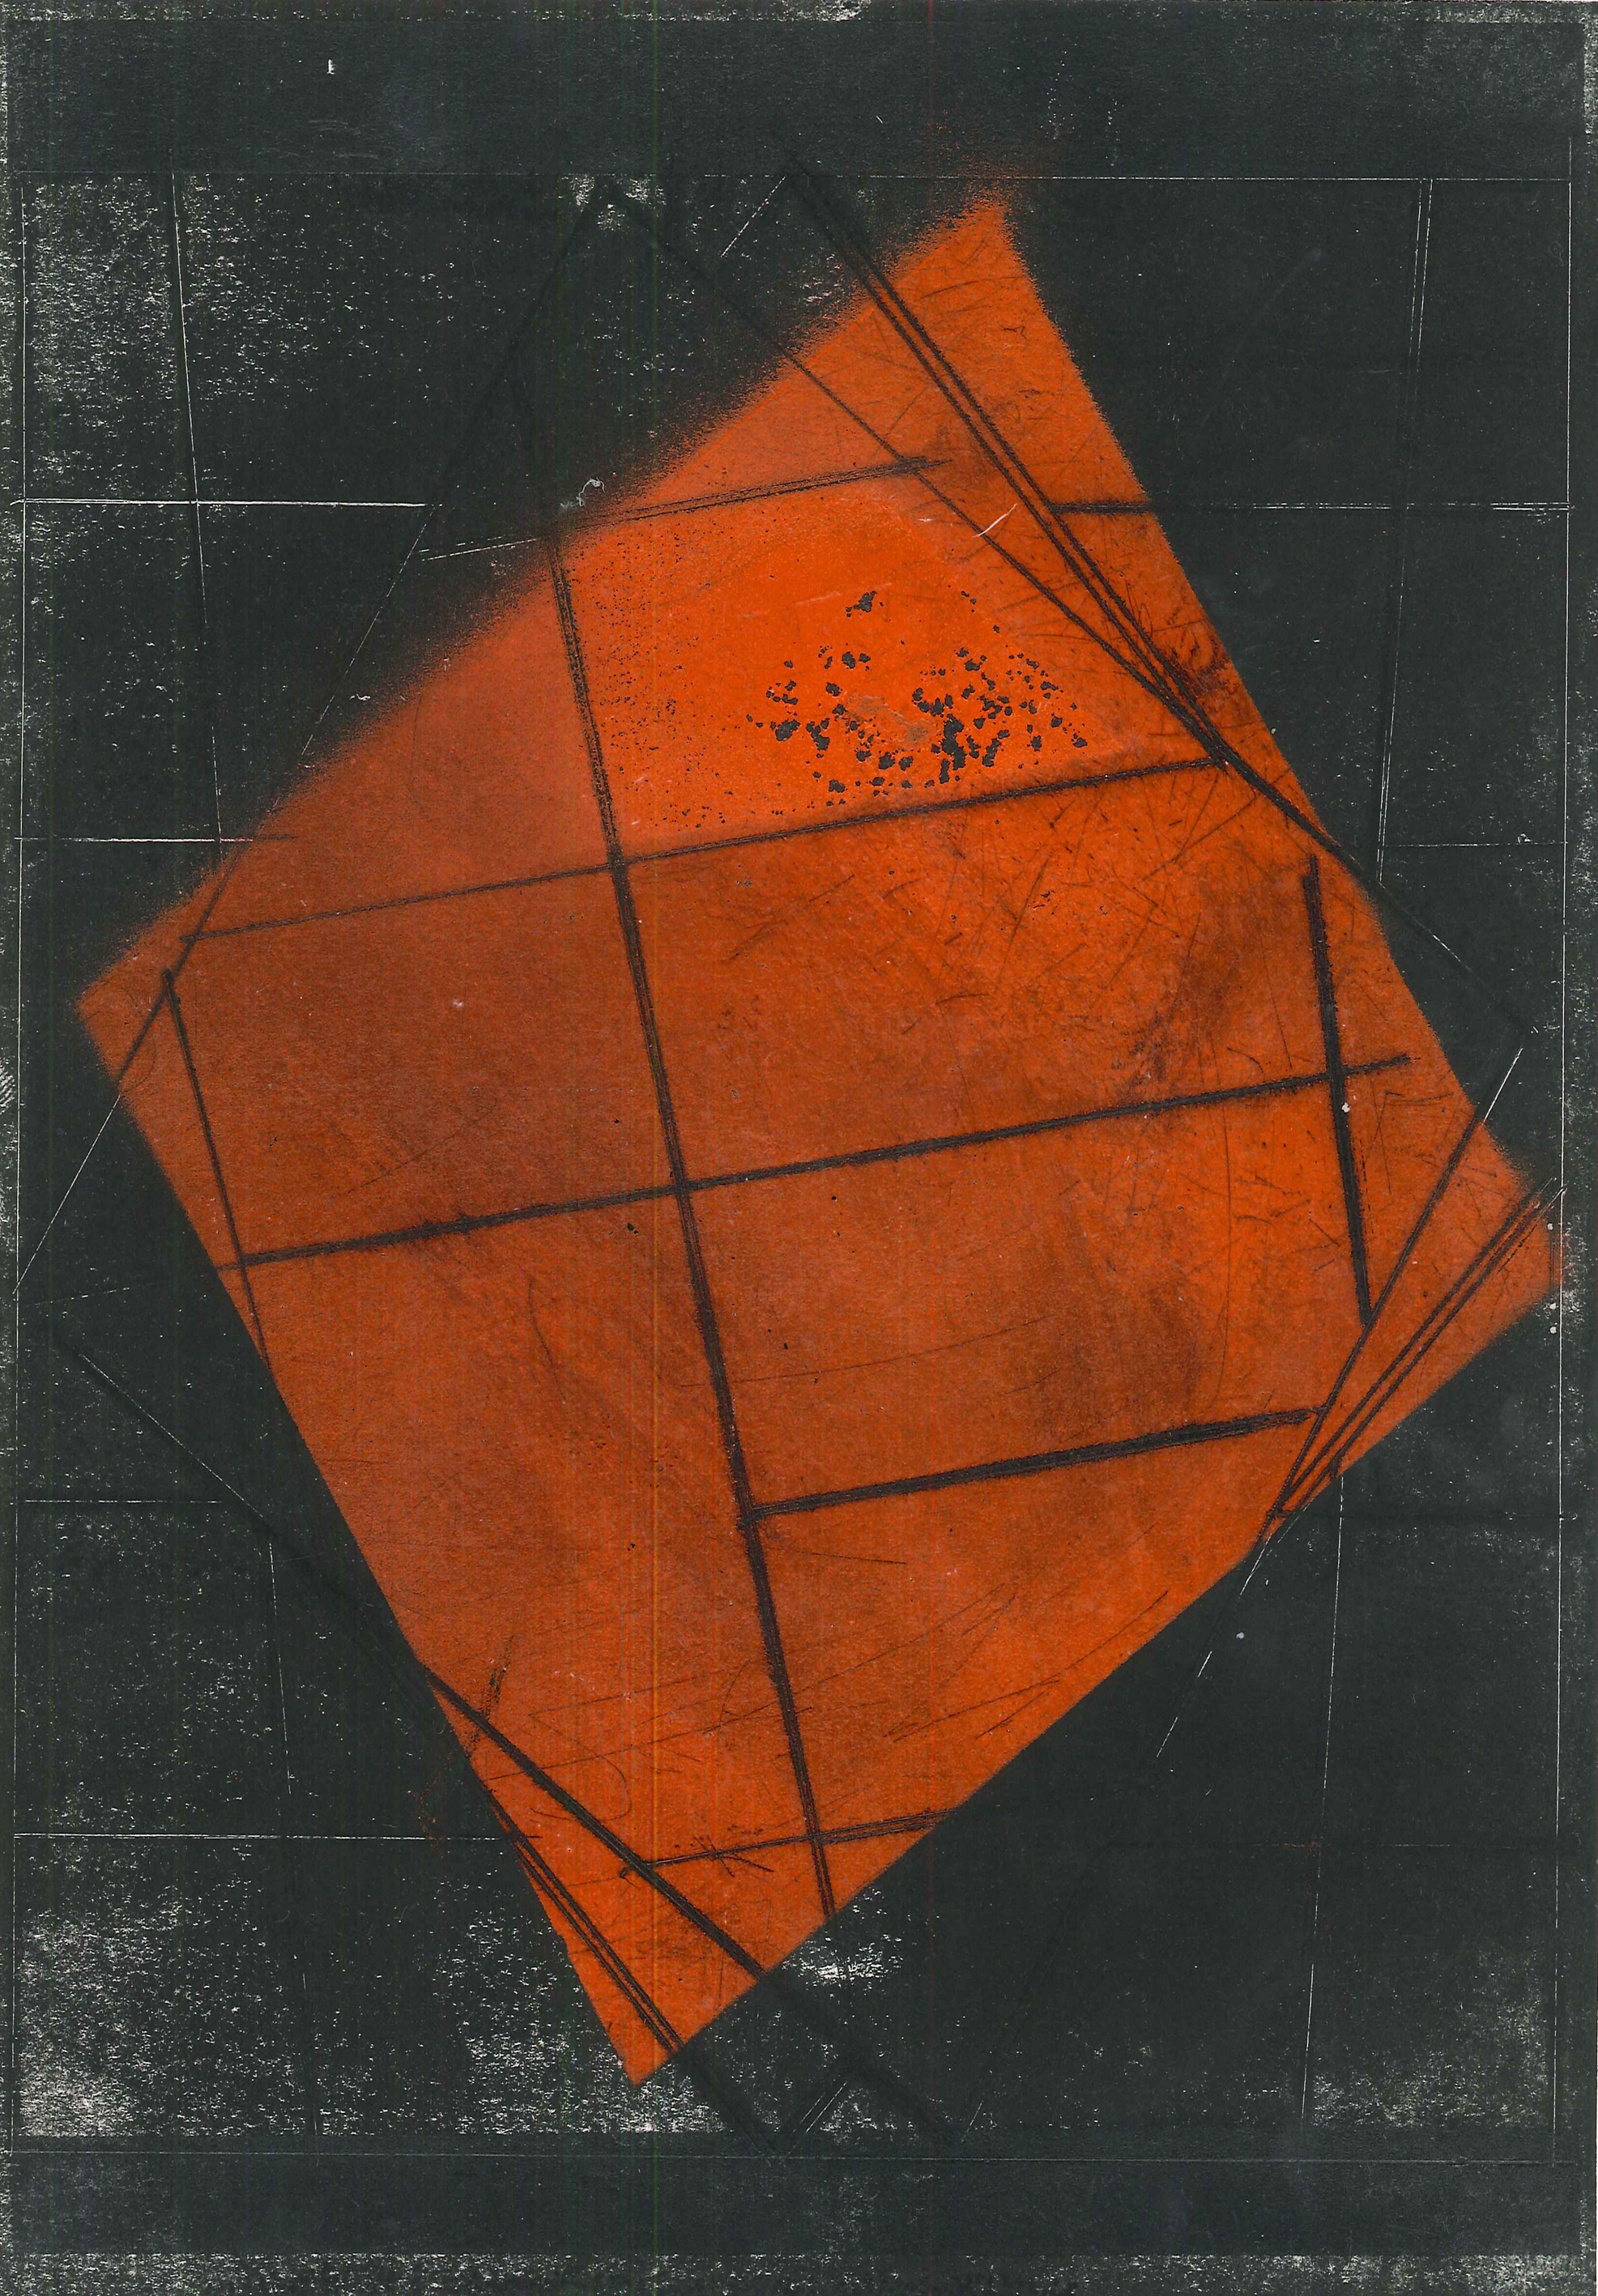 'Untitled', 2015, etching and spray paint on cartridge paper, 29.5 x 21 cm